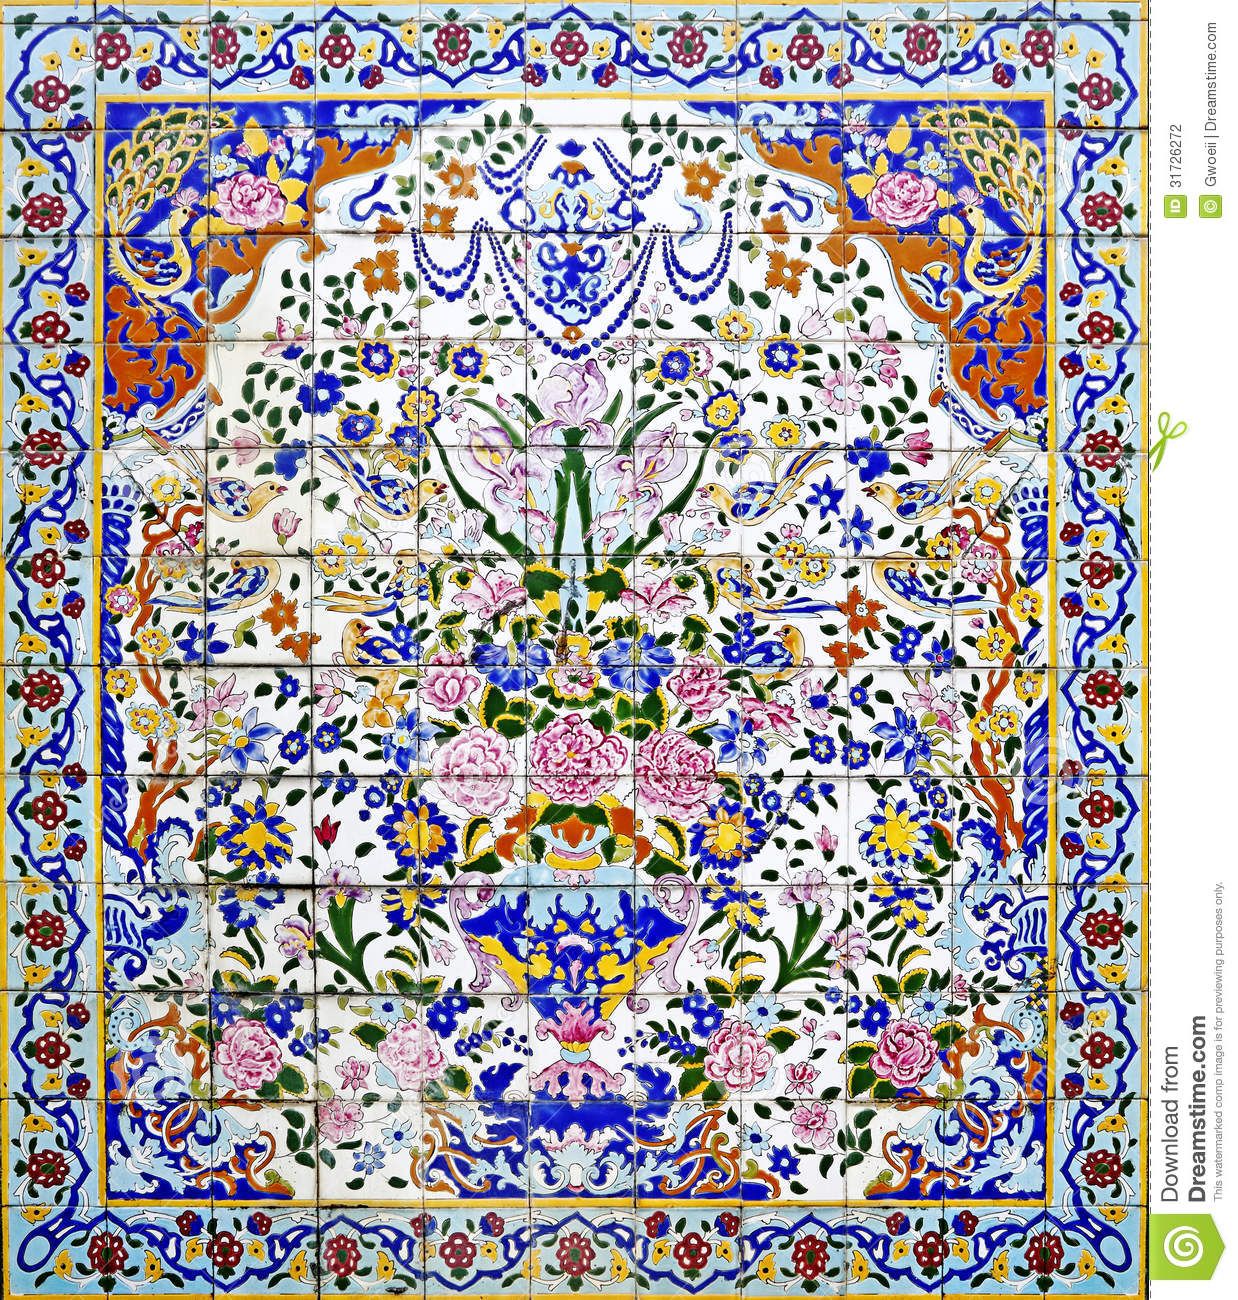 Exotic ancient Persian wall tiles for textural background